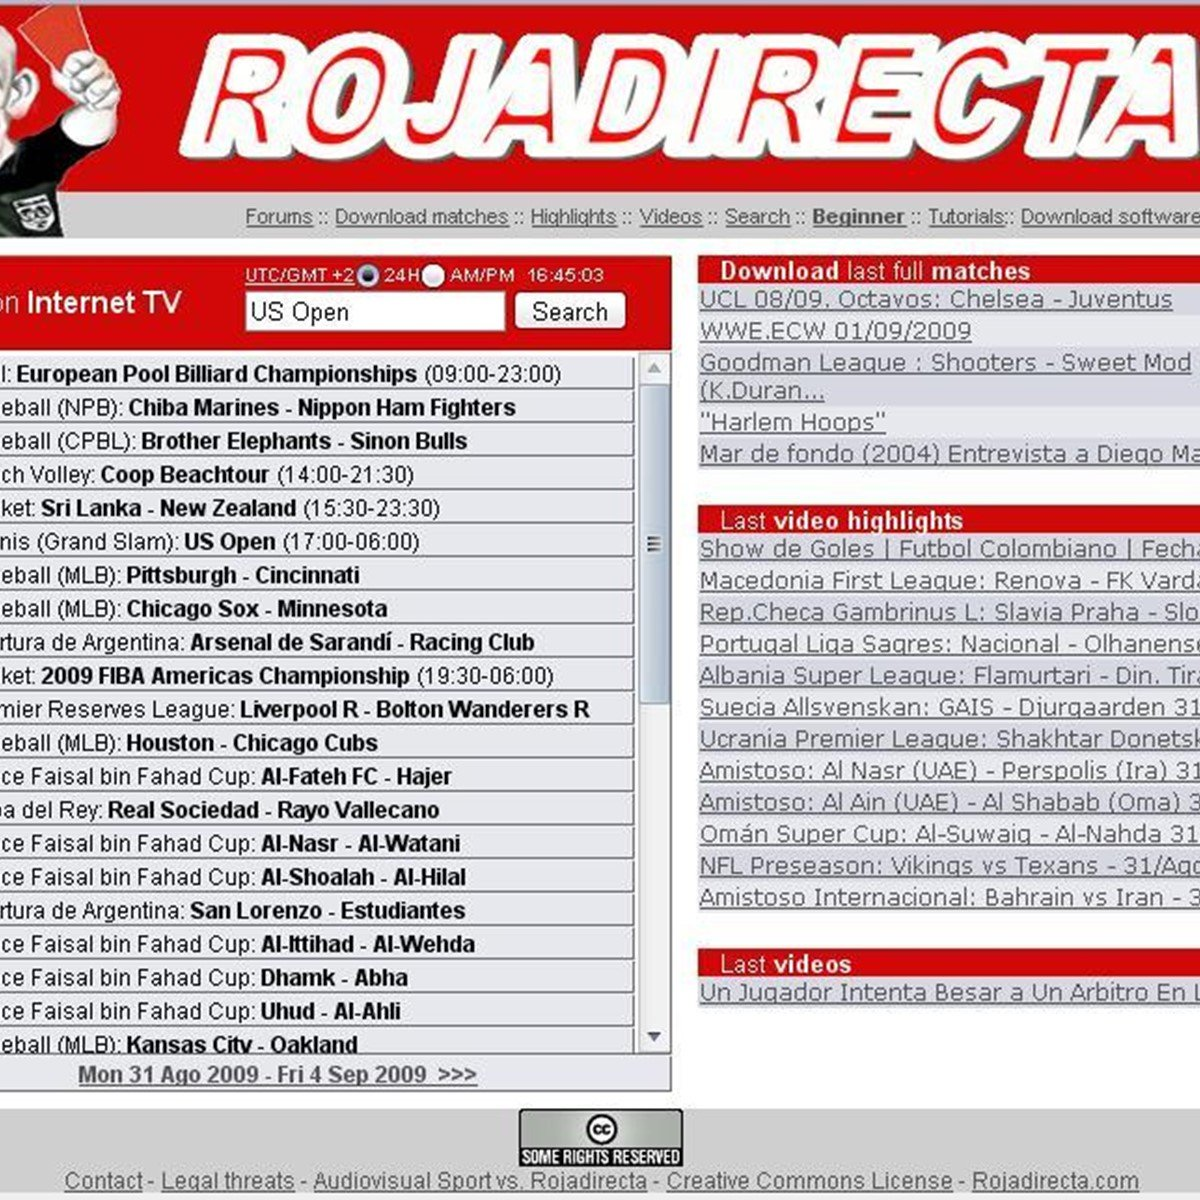 Rojadirecta Alternatives And Similar Websites And Apps